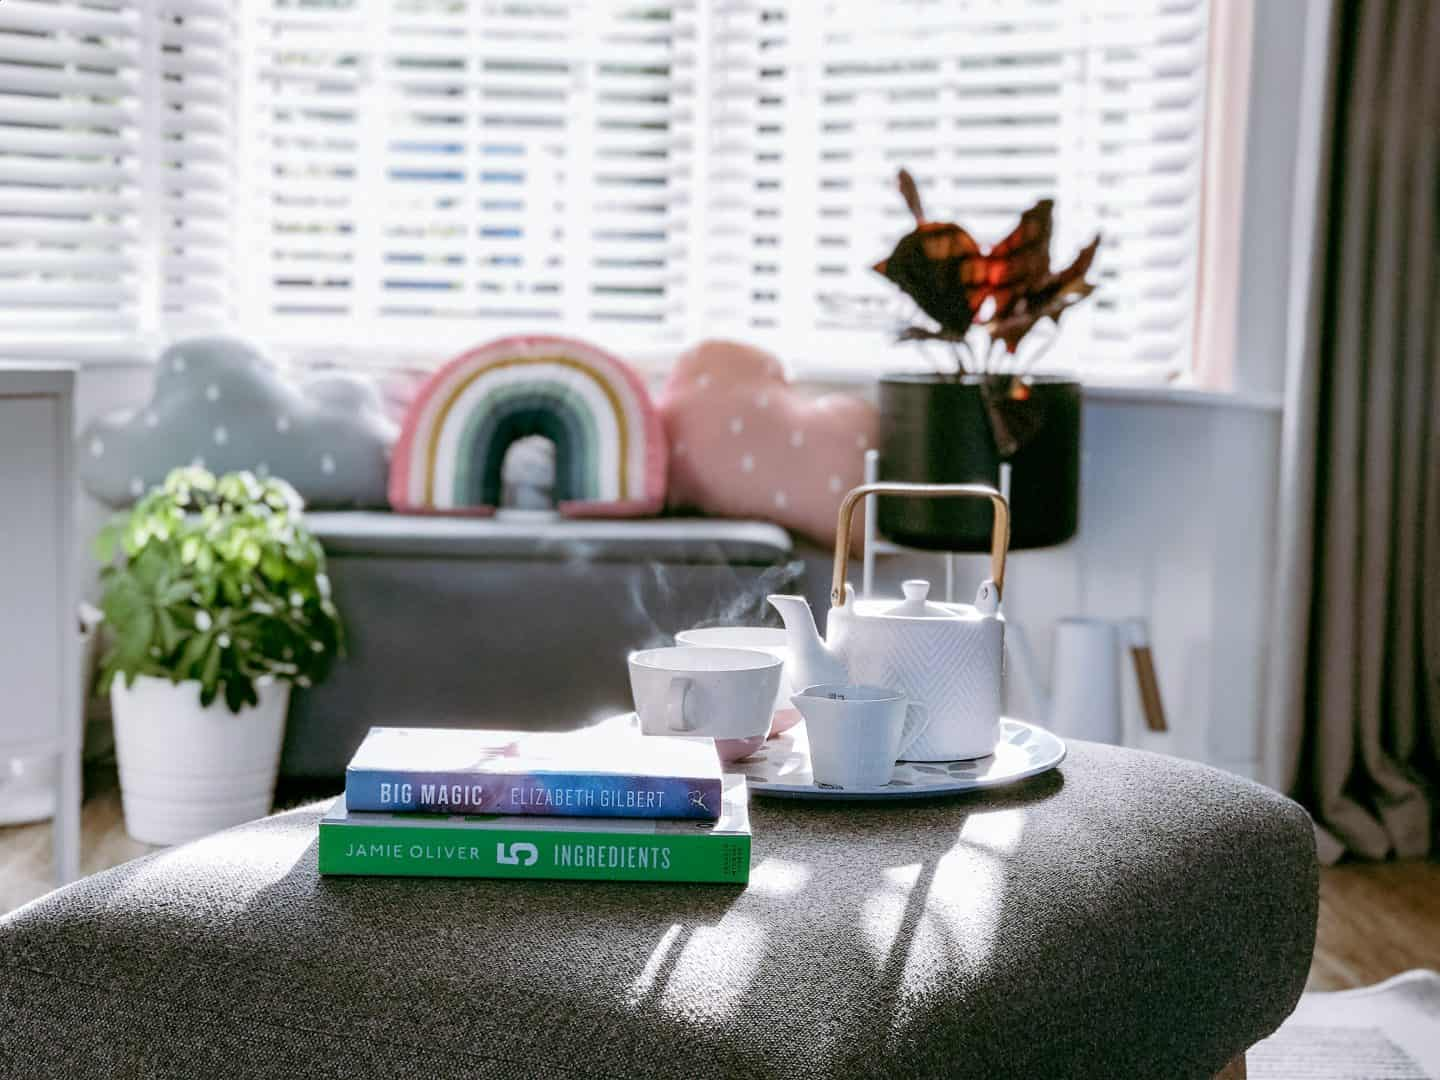 Tea tray and books in front of white wooden blinds with tapes